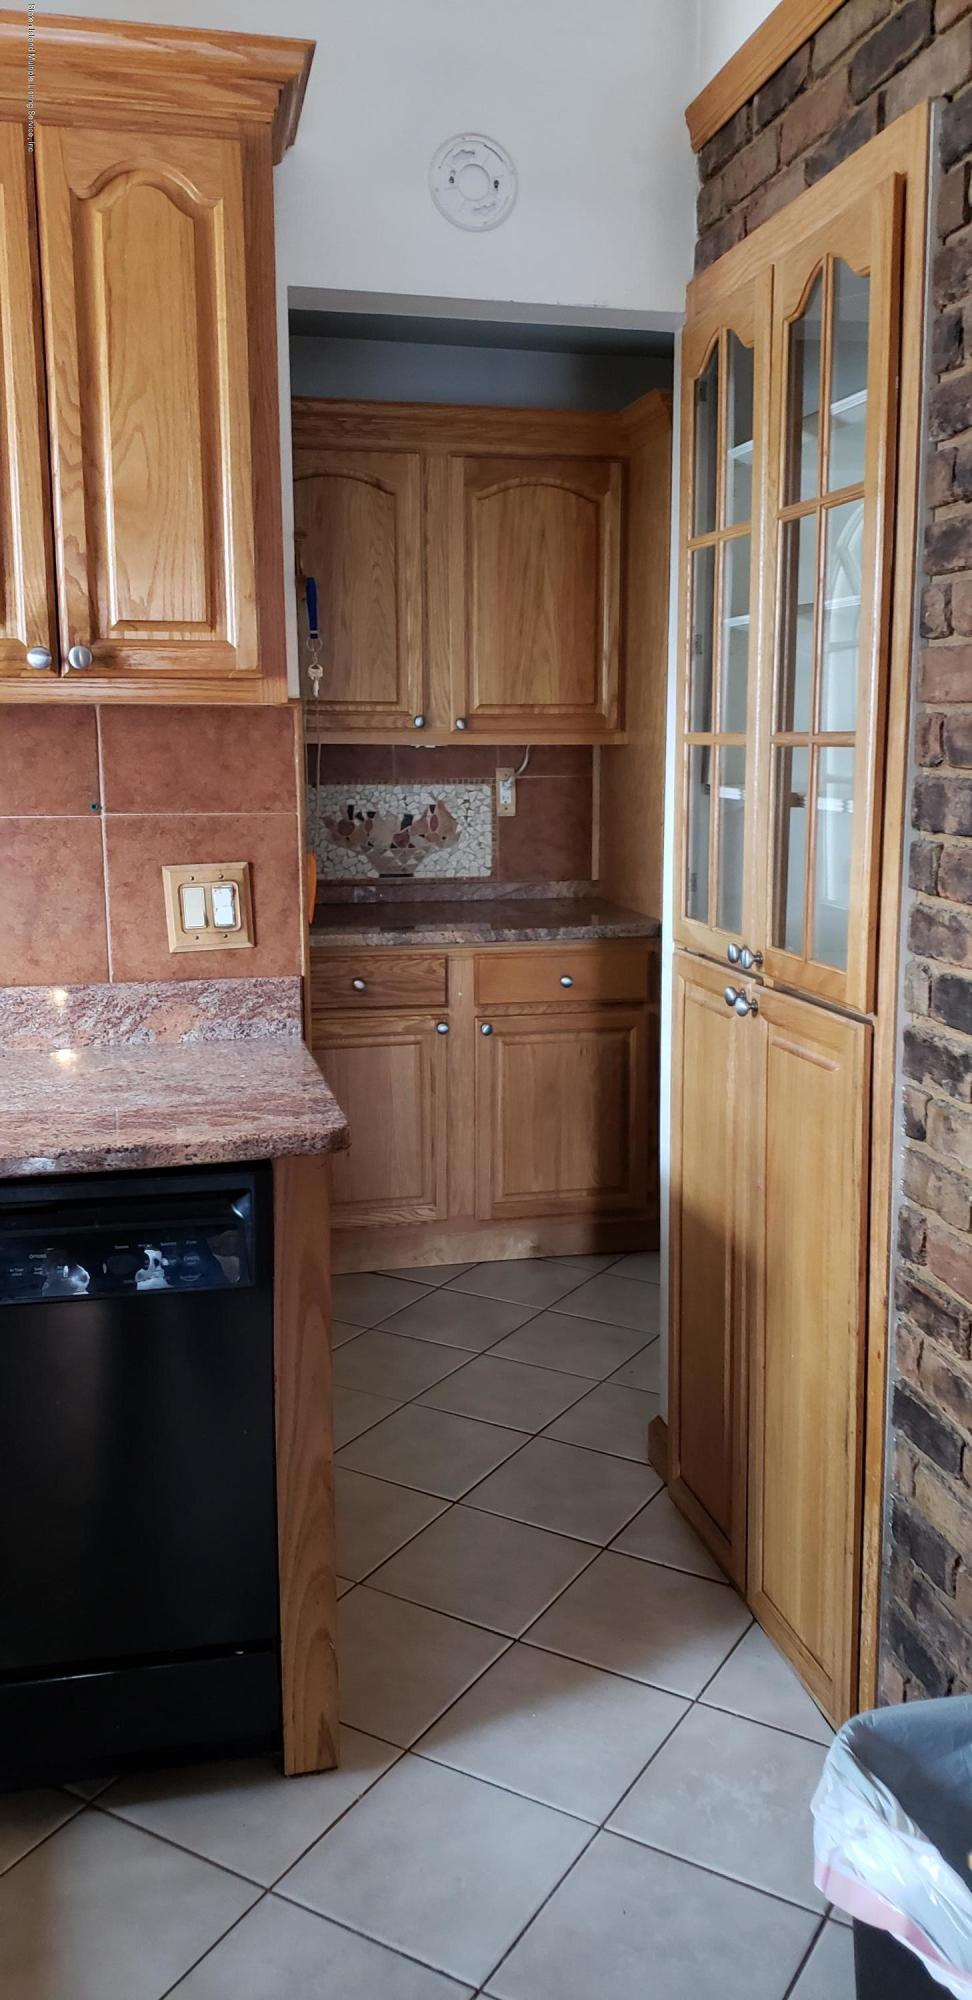 Single Family - Detached 83 Evelyn Place  Staten Island, NY 10305, MLS-1125485-11